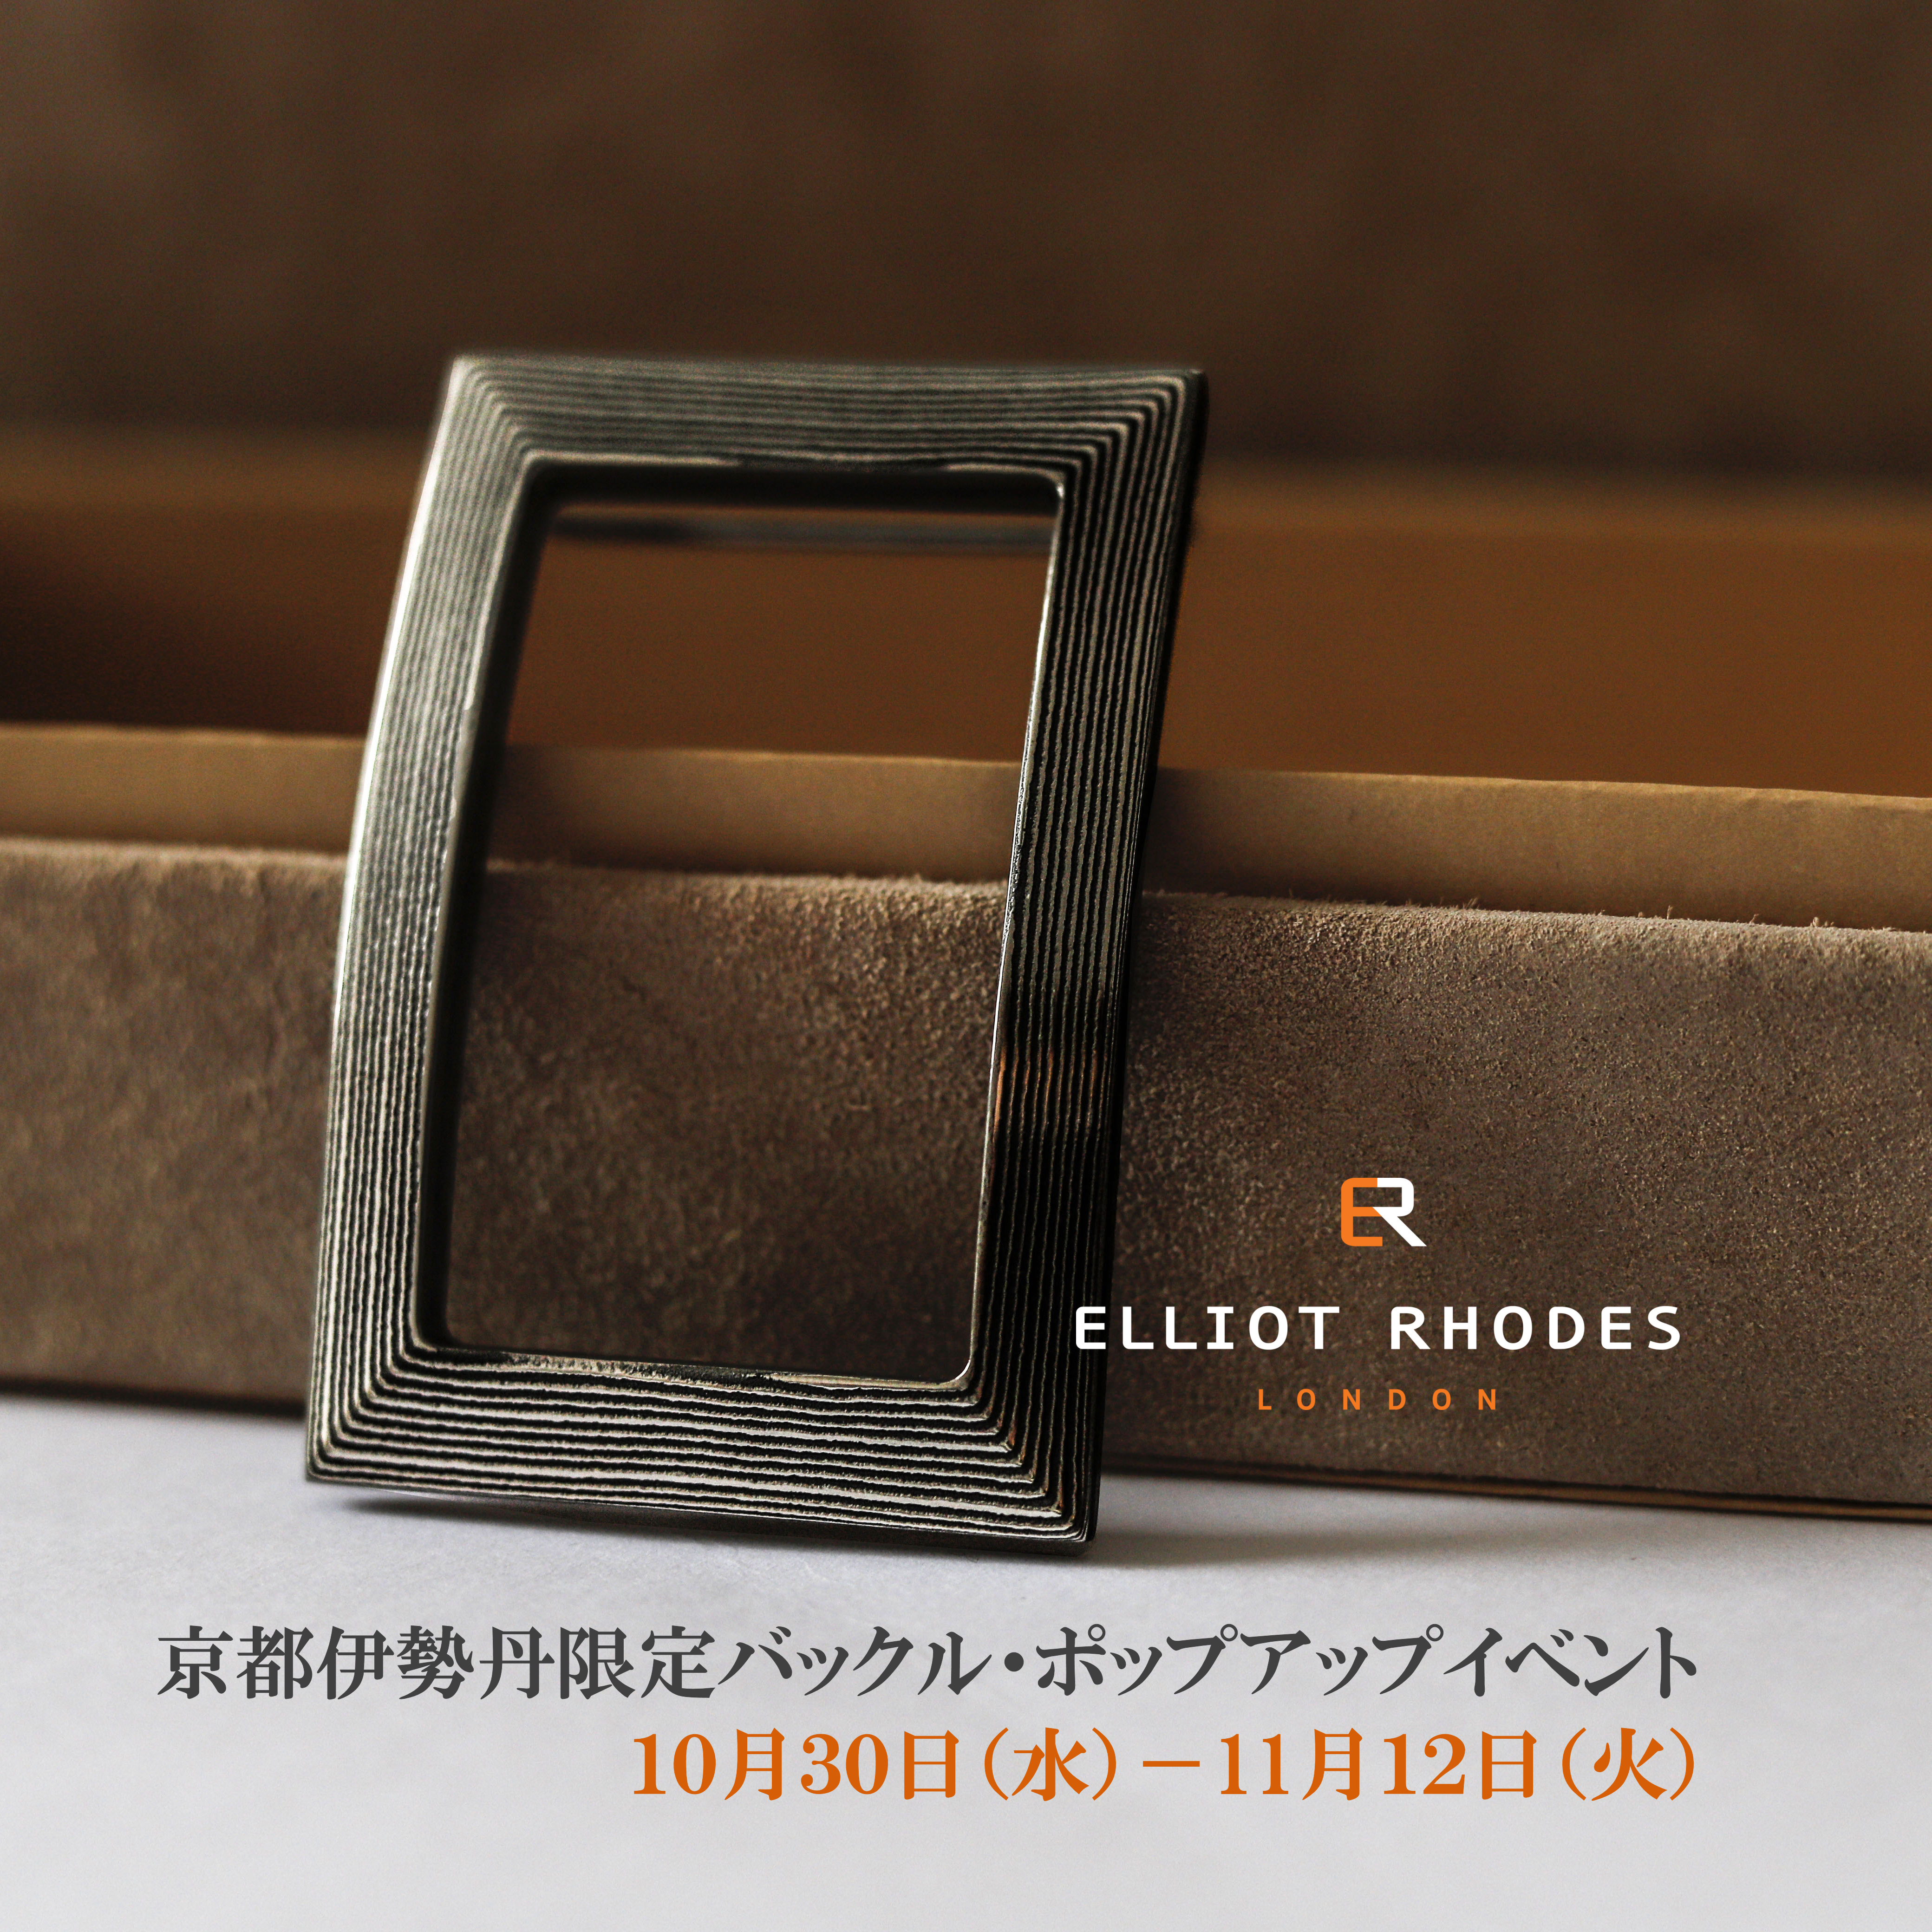 ELLIOT RHODES LONDON KYOTO ISETAN POPUP EVENT